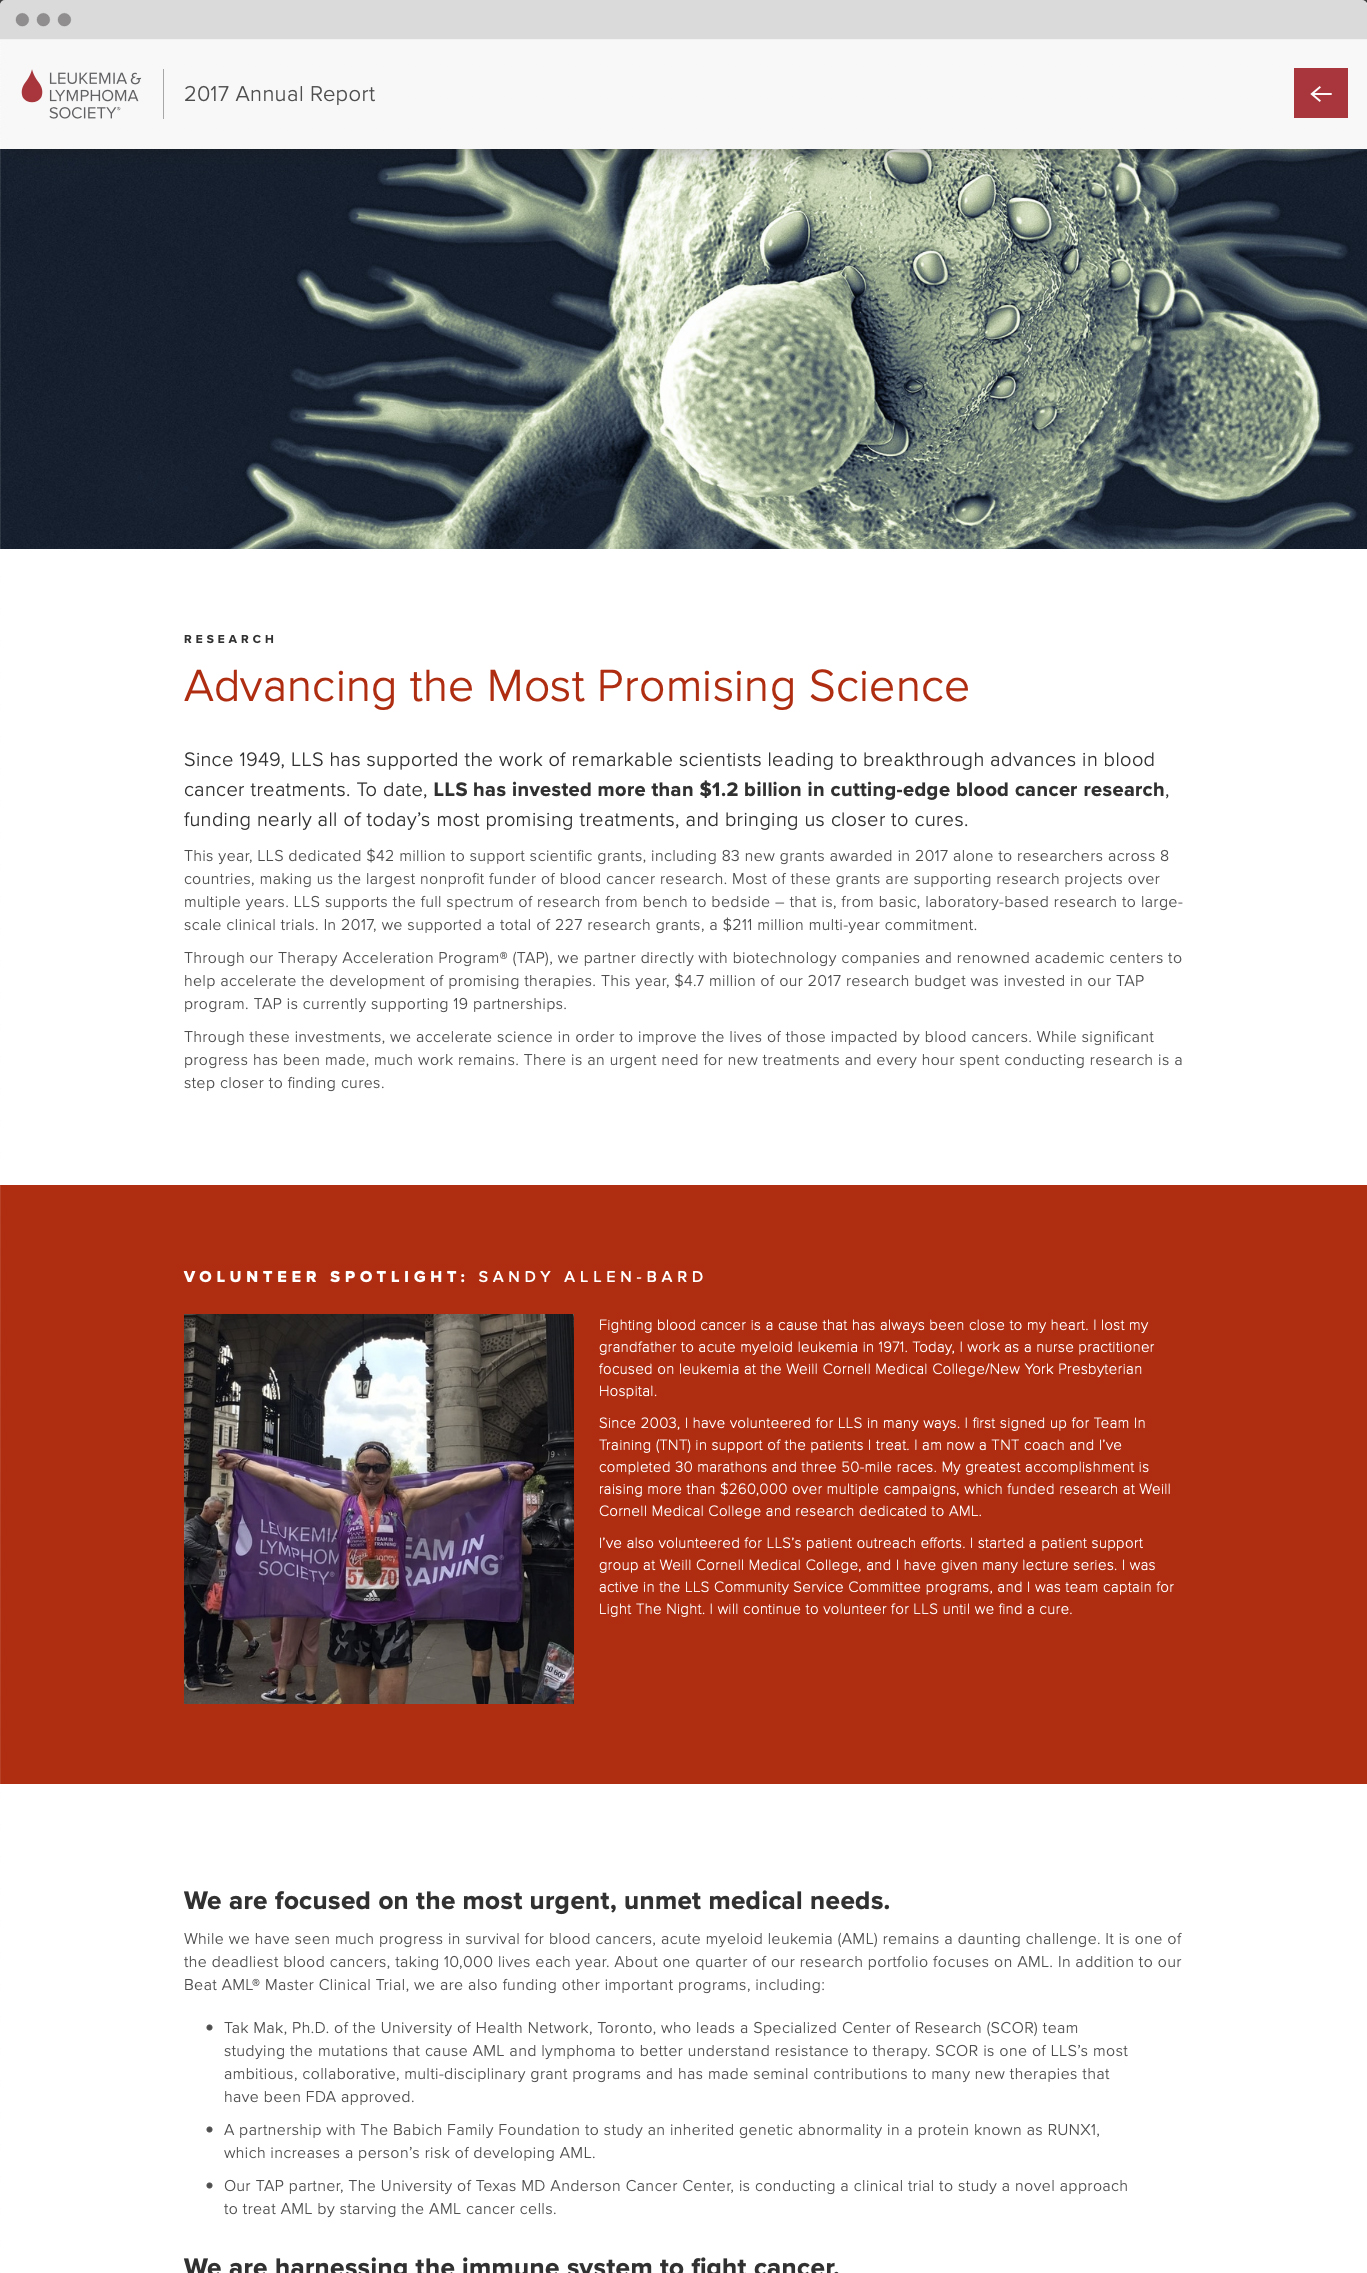 LLS Digital Annual Report science advancements page